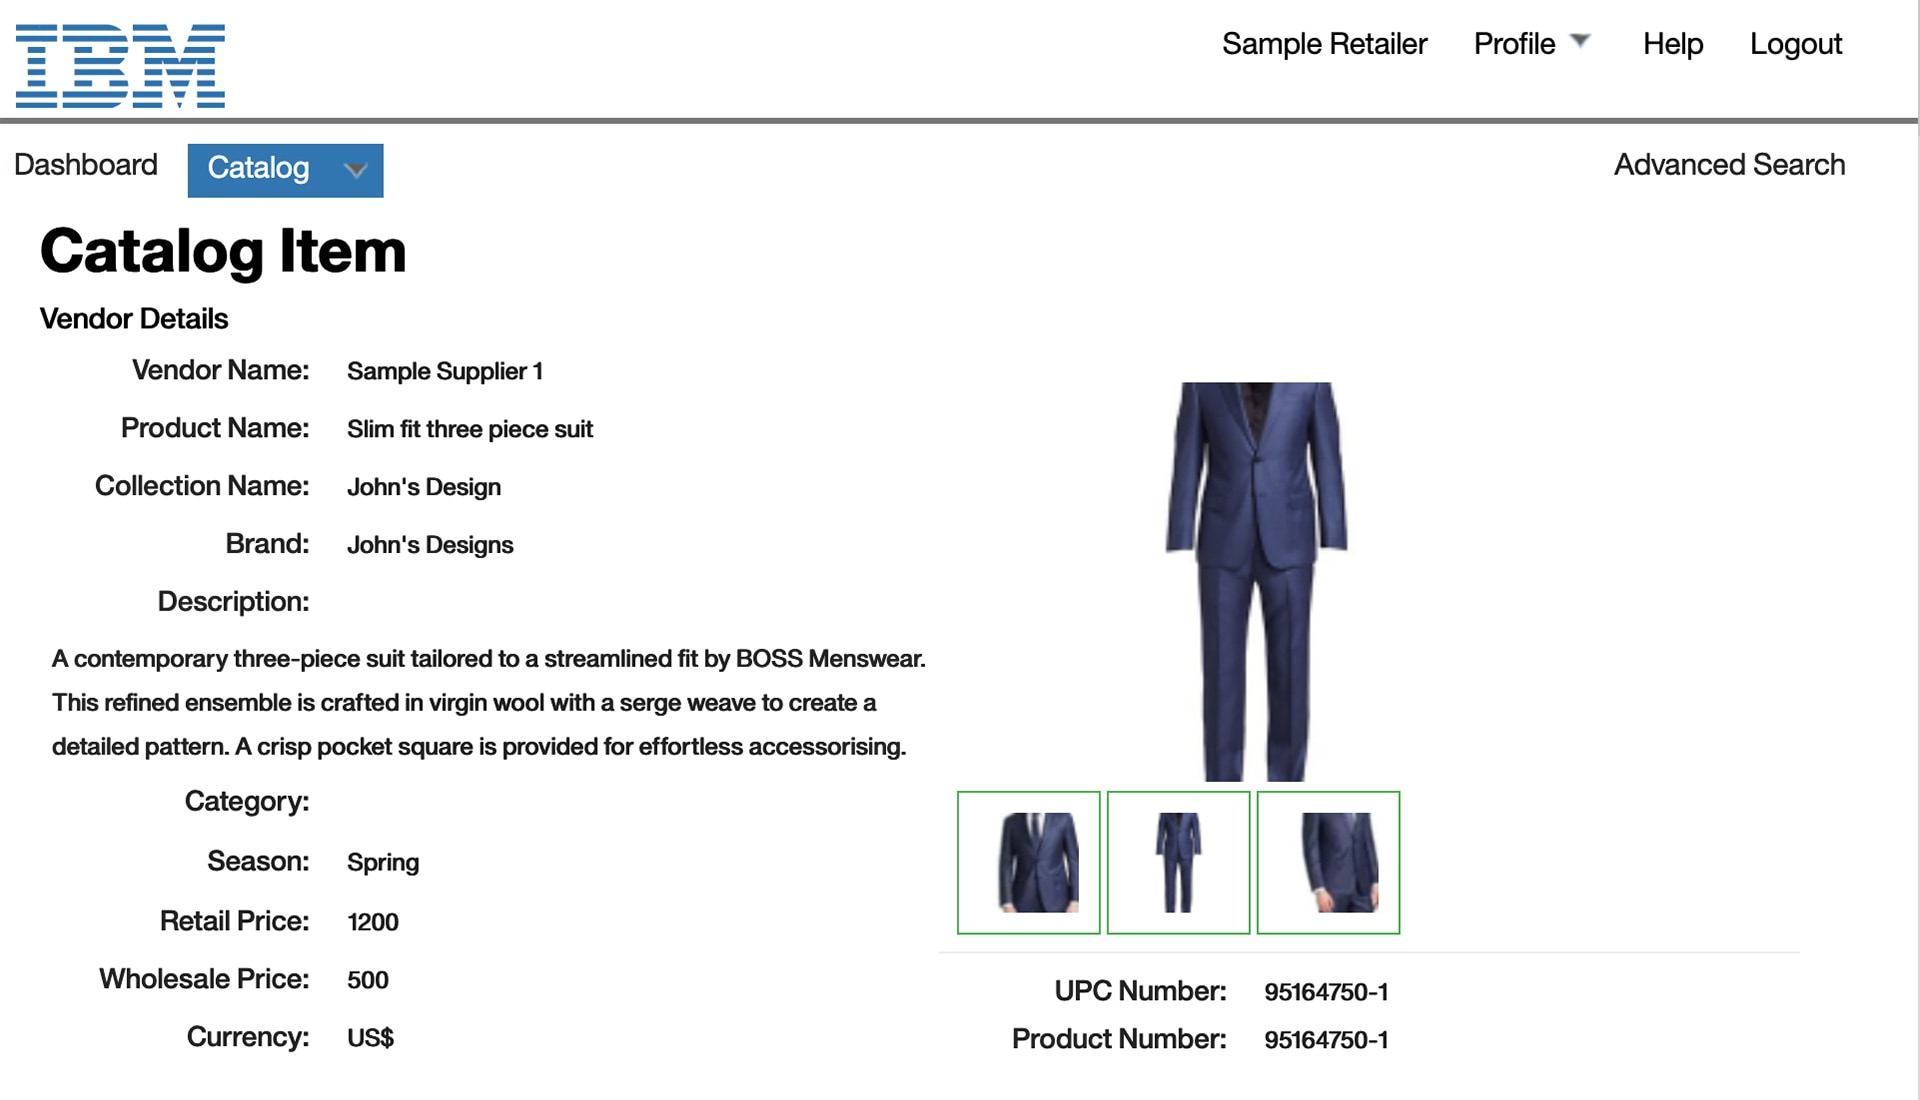 Screen capture showing a product profiled in IBM Sterling Catalog Manager.